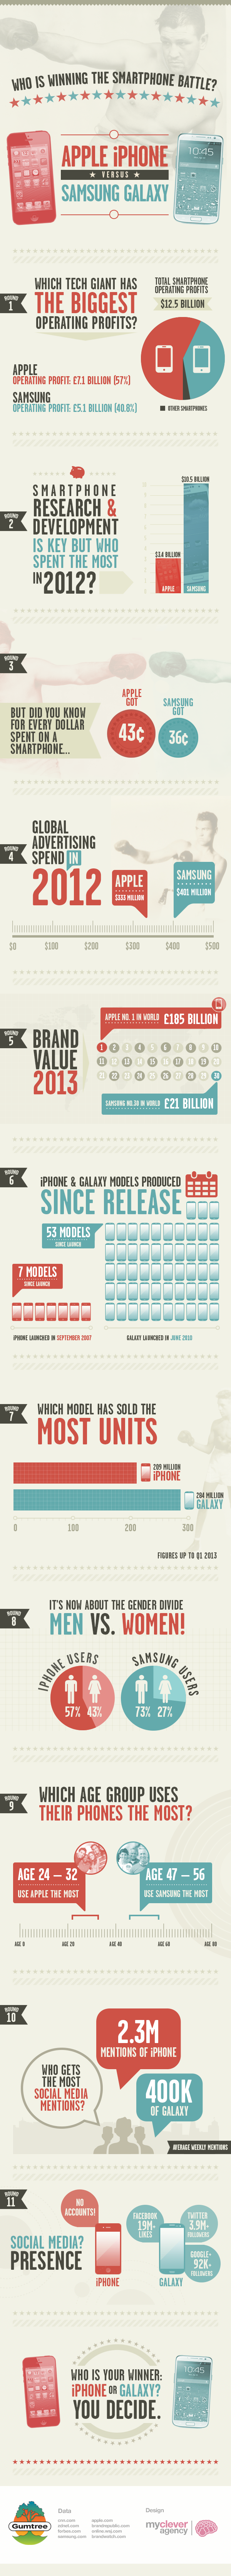 13. Gumtree-Infographic-iPhone-vs-galaxy